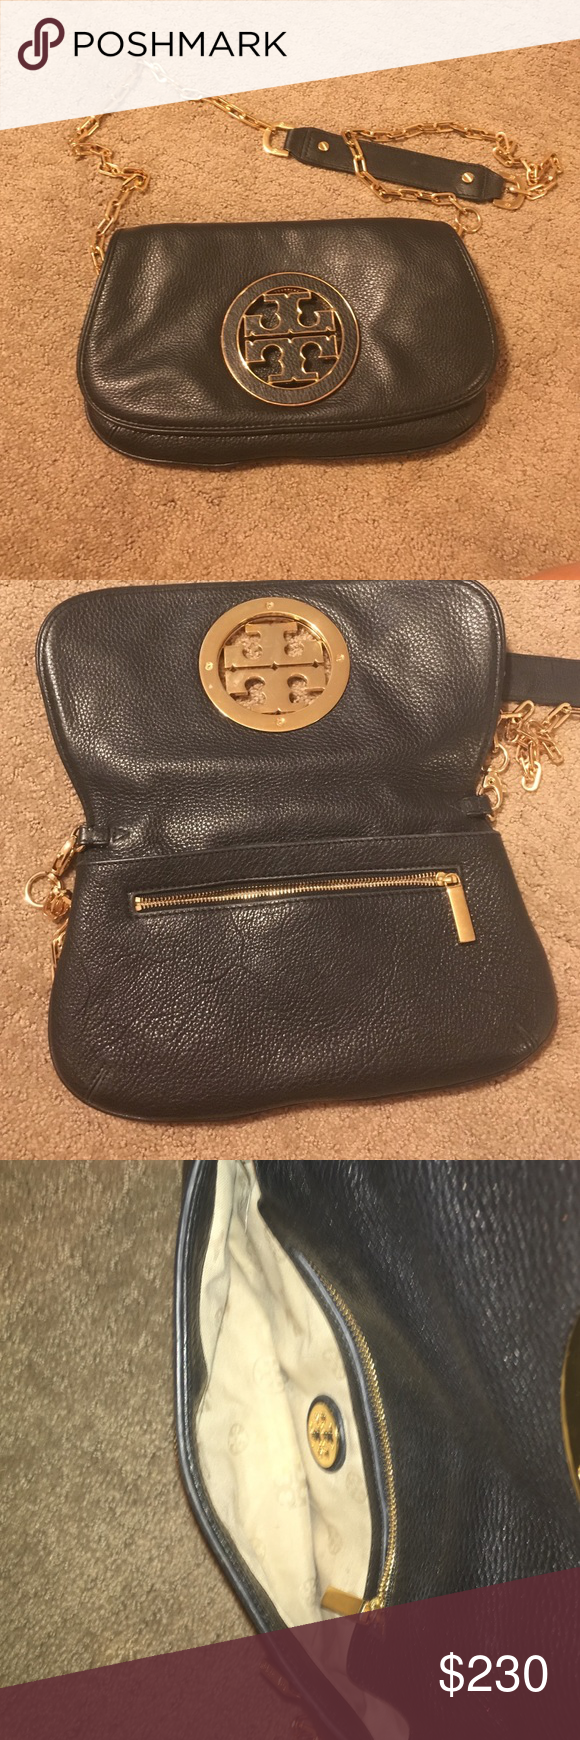 Tory Burch Crossbody bag Black sigh gold symbol ing. Great condition on the outside and a little wear on the inside. Tory Burch Bags Crossbody Bags